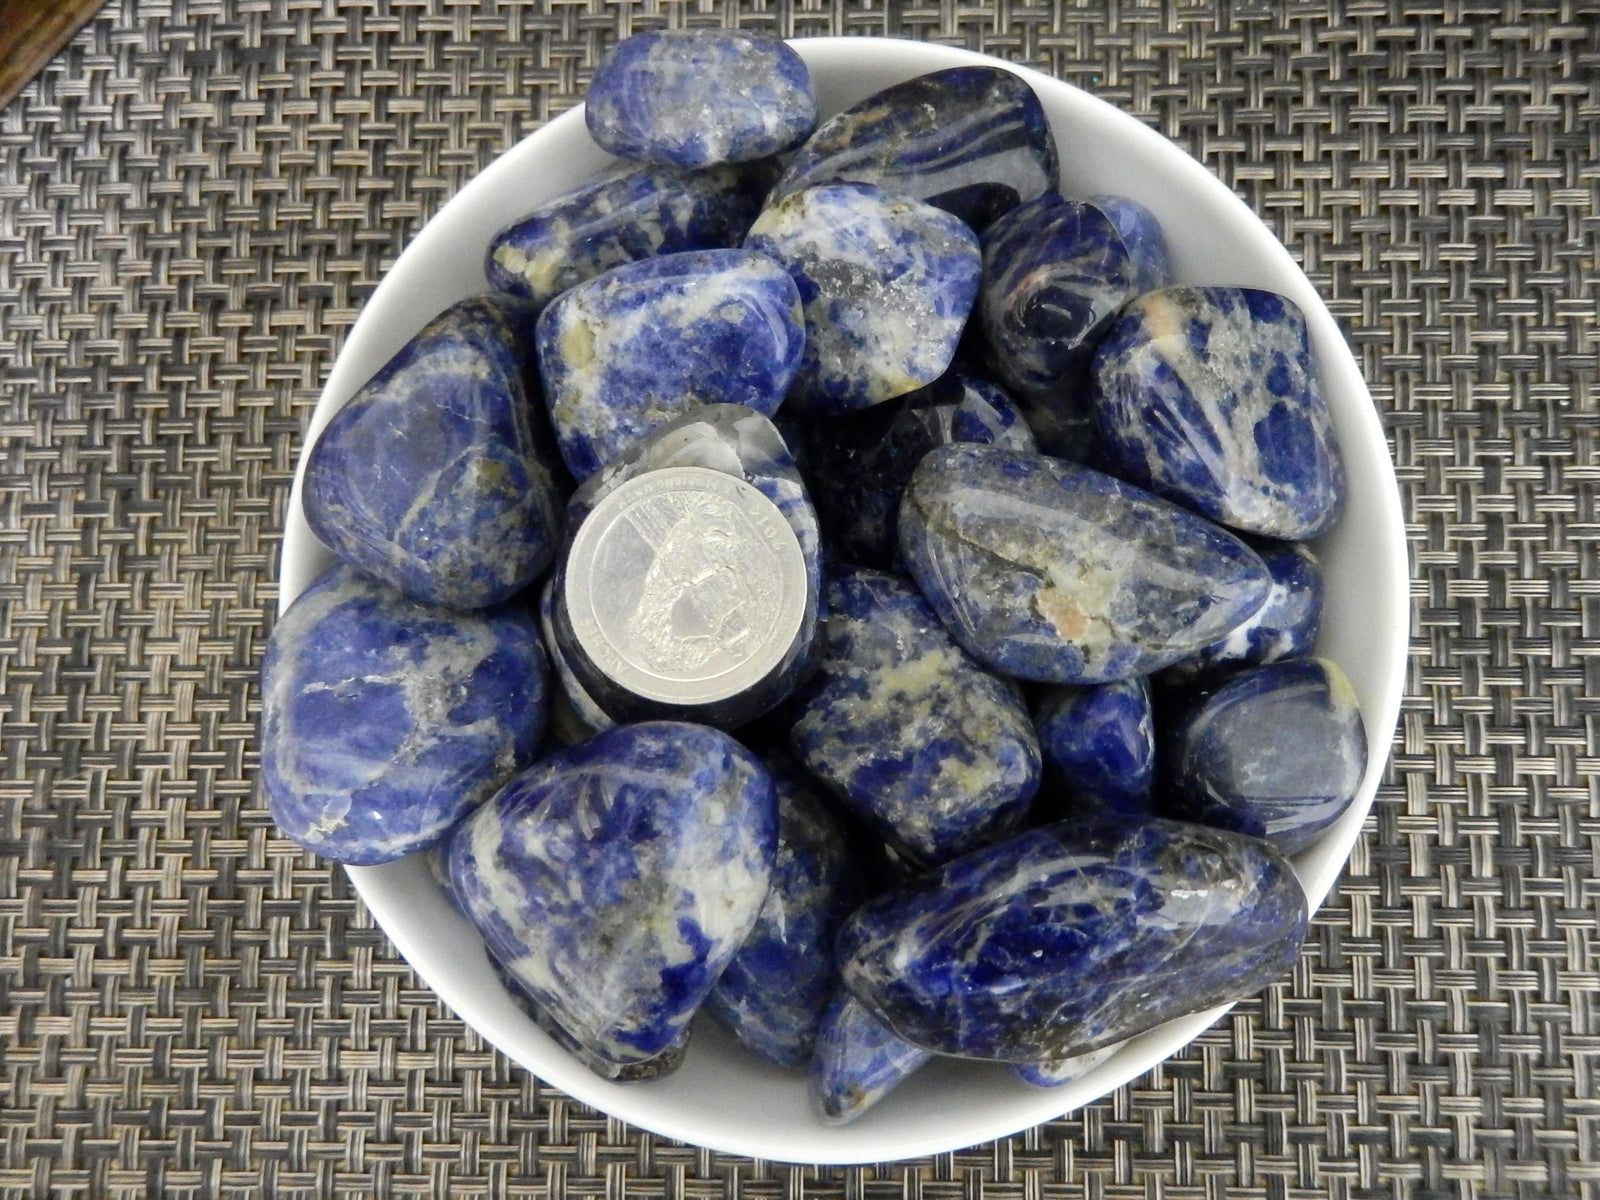 Tumbled Stones - 1 Lb Blue Sodalite Tumbled Gemstones - Polished Stones - Jewelry Supplies - Arts And Crafts - Choose 1,3,5 Bags (TS-19)